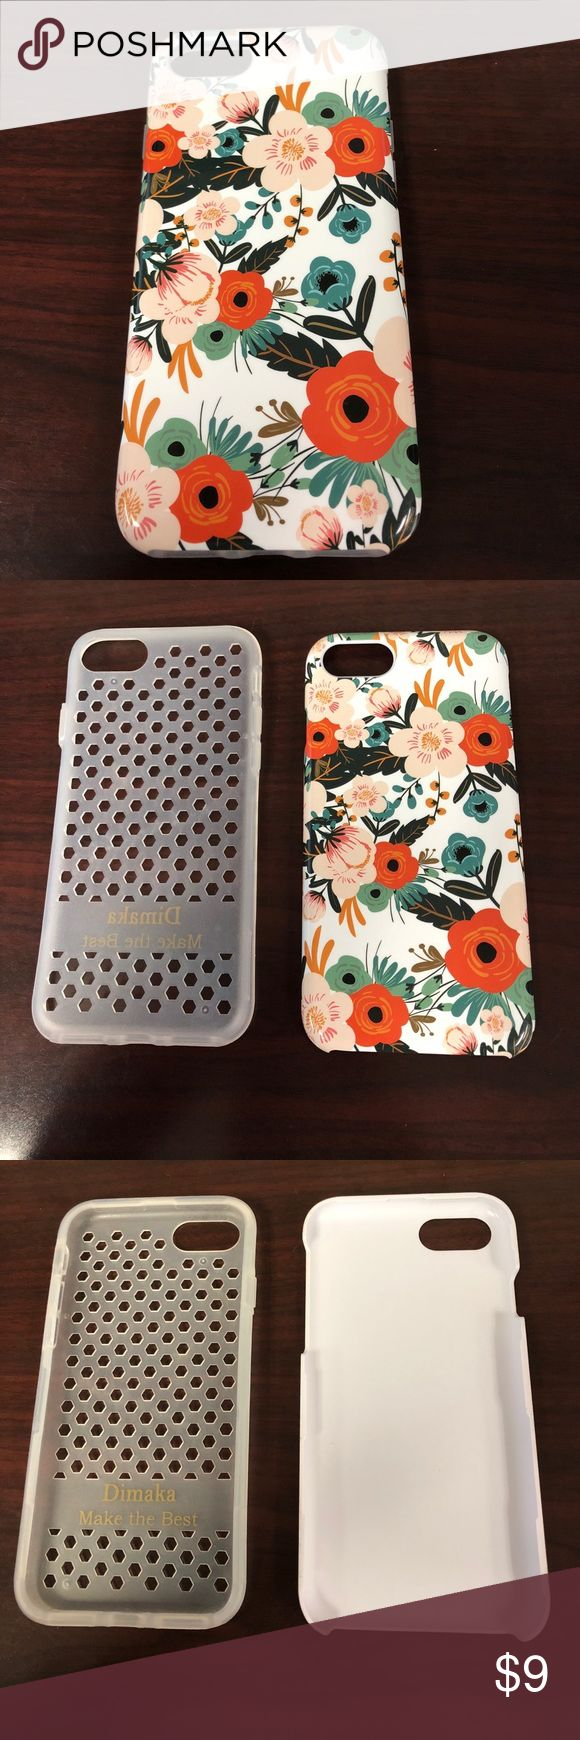 iPhone 7 flower case brand new condition Bought off amazon about three months ago and just upgraded to the plus. As seen in photos case is practically brand new. Reasonable offers only. Accessories Phone Cases